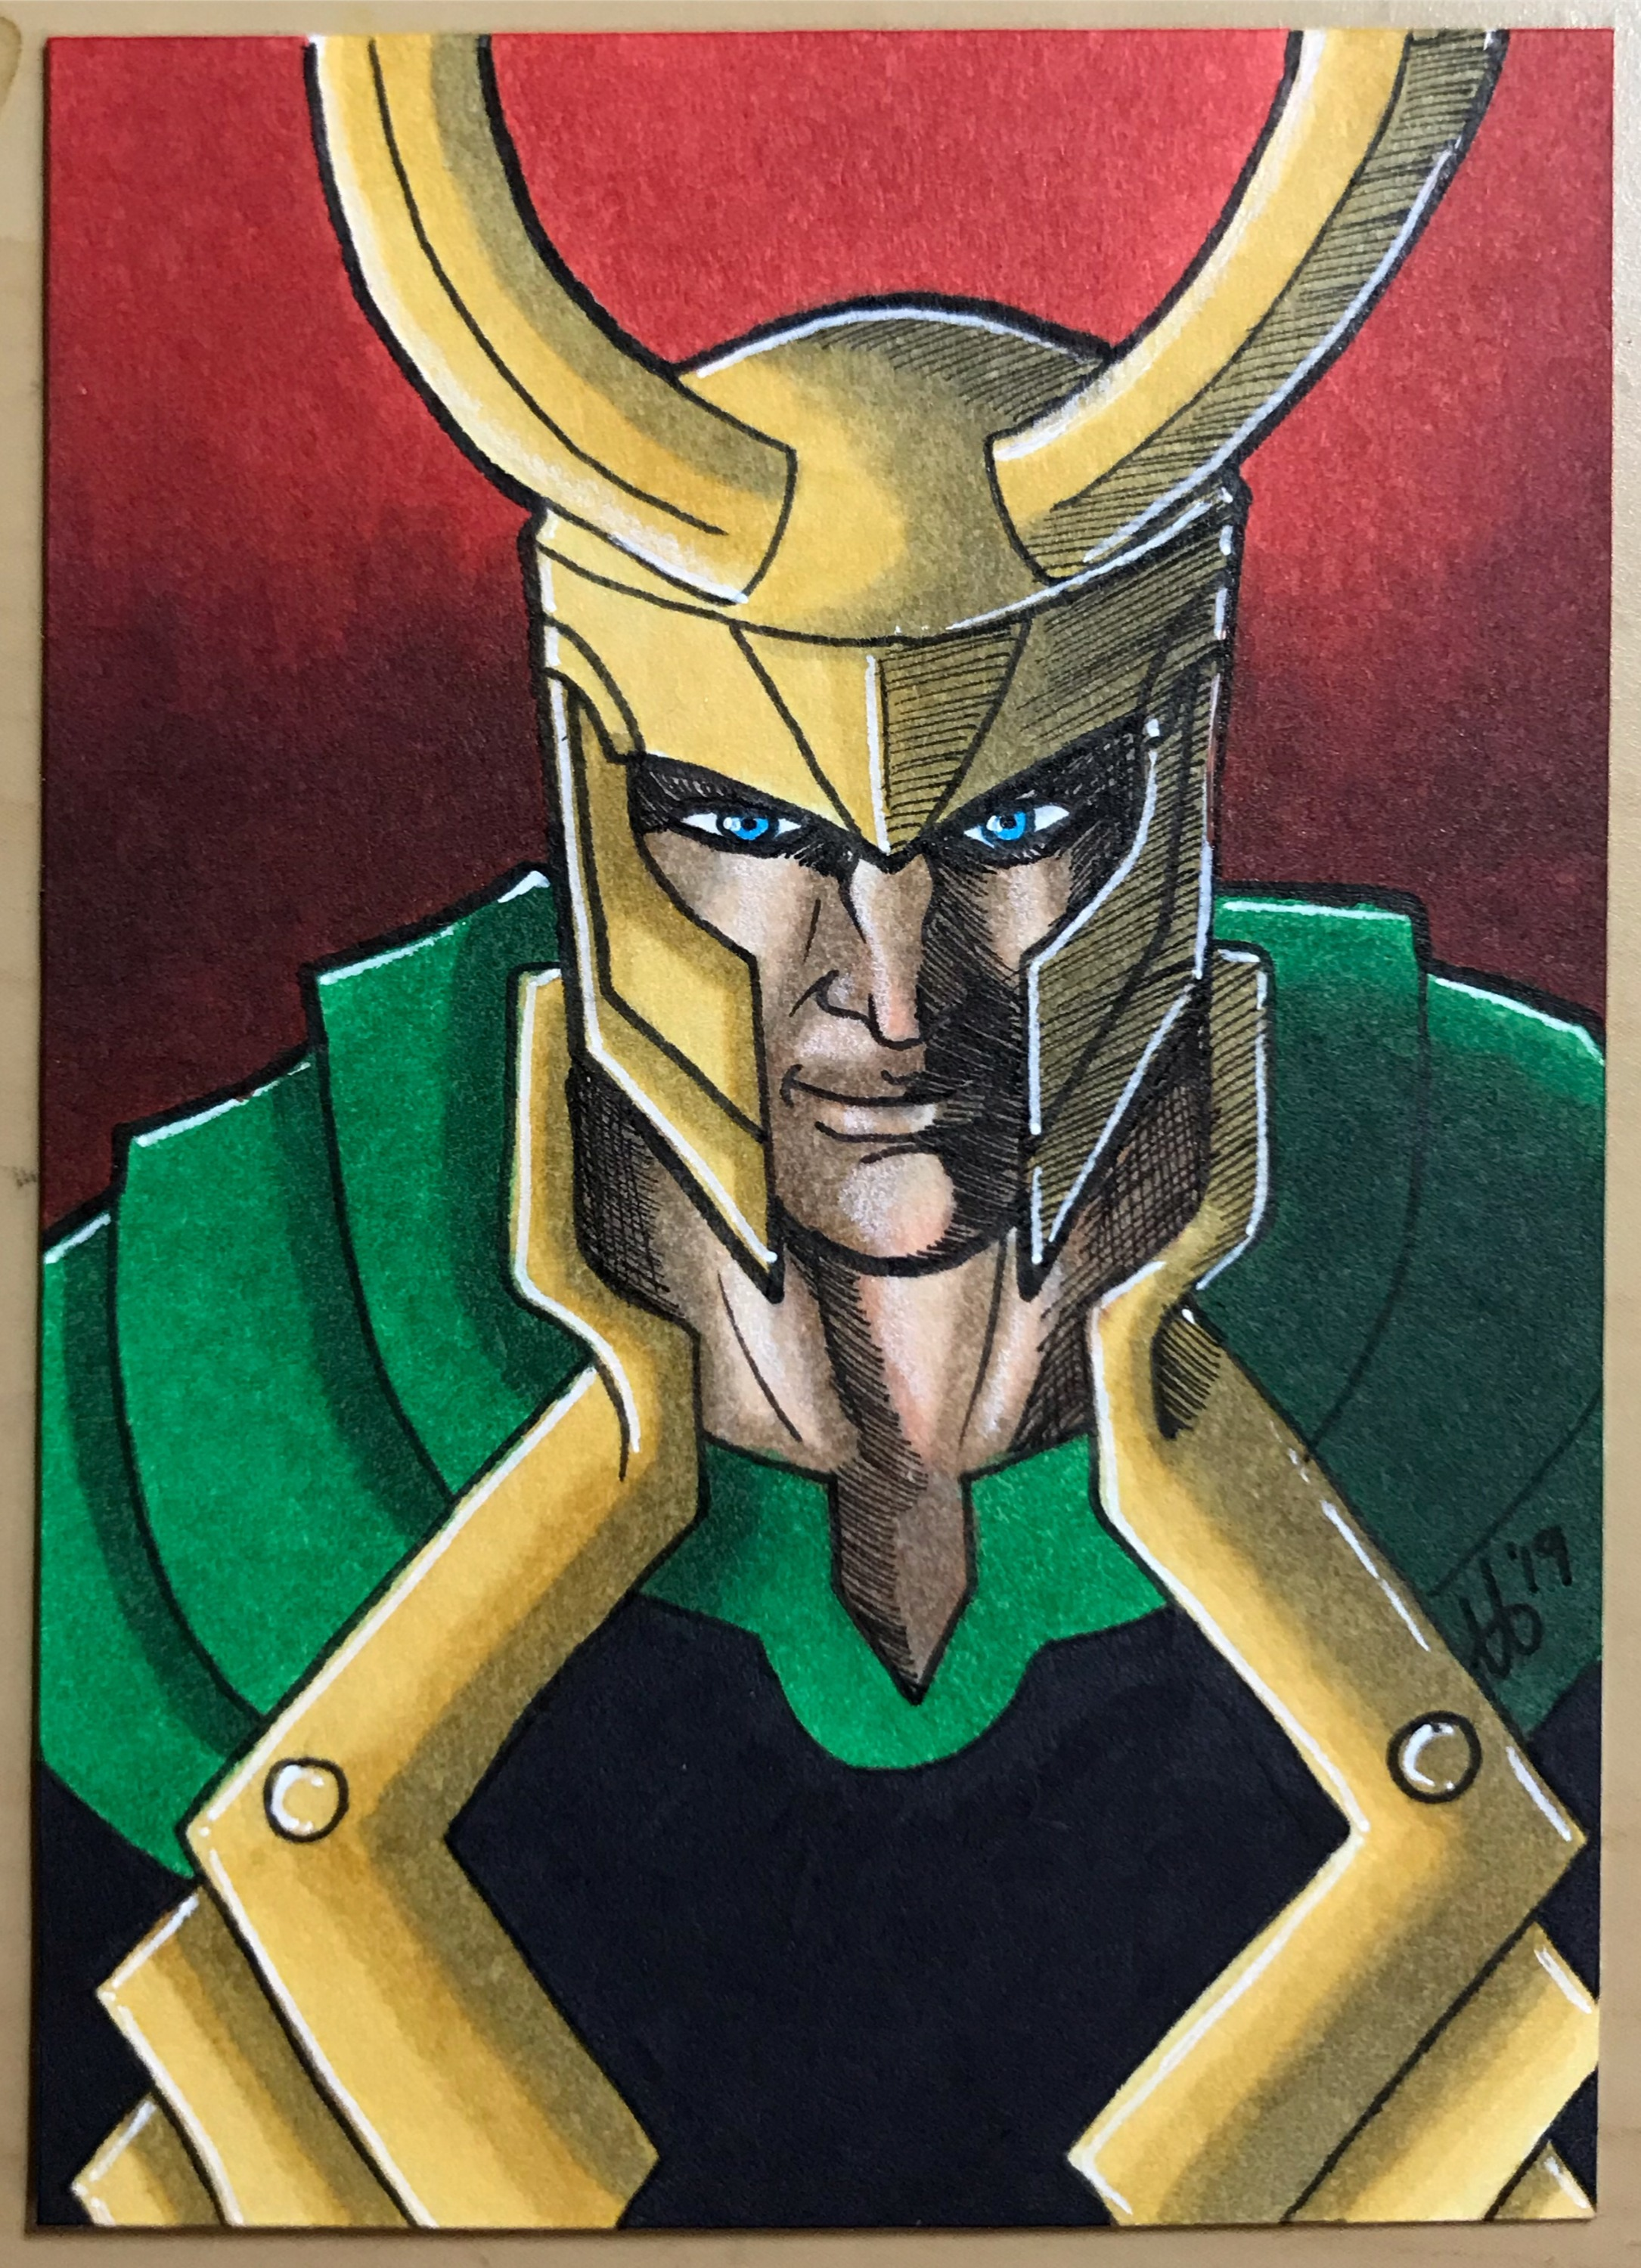 Loki - Art and color by Riley Reyer